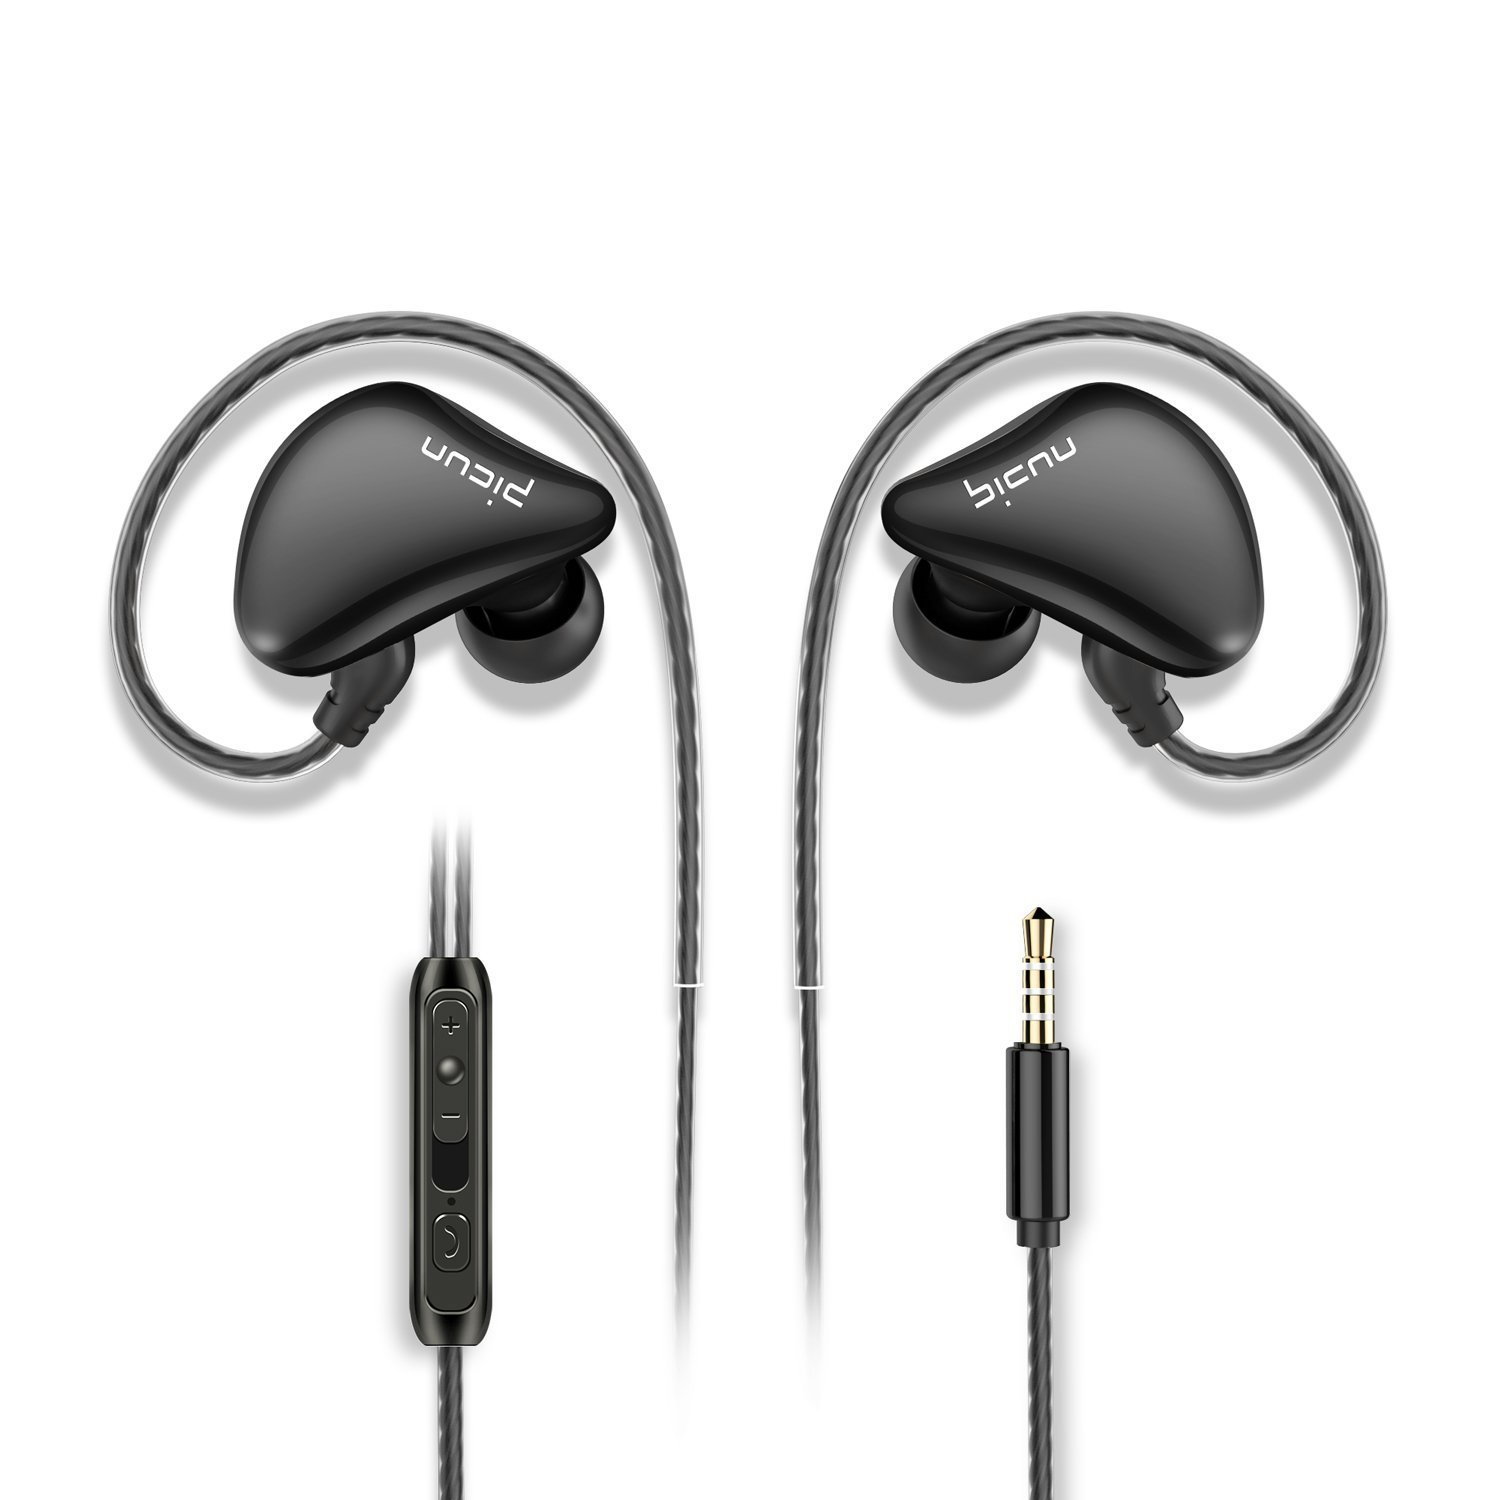 Picun S6 Sports Earbuds In Ear Headphones with Microphone&Volume Control for Running Gym Workout Jogging,Earphones for iPhone iPad iPod Tablets Android Smartphones Laptop Tablets MP3/4(Pure Black)